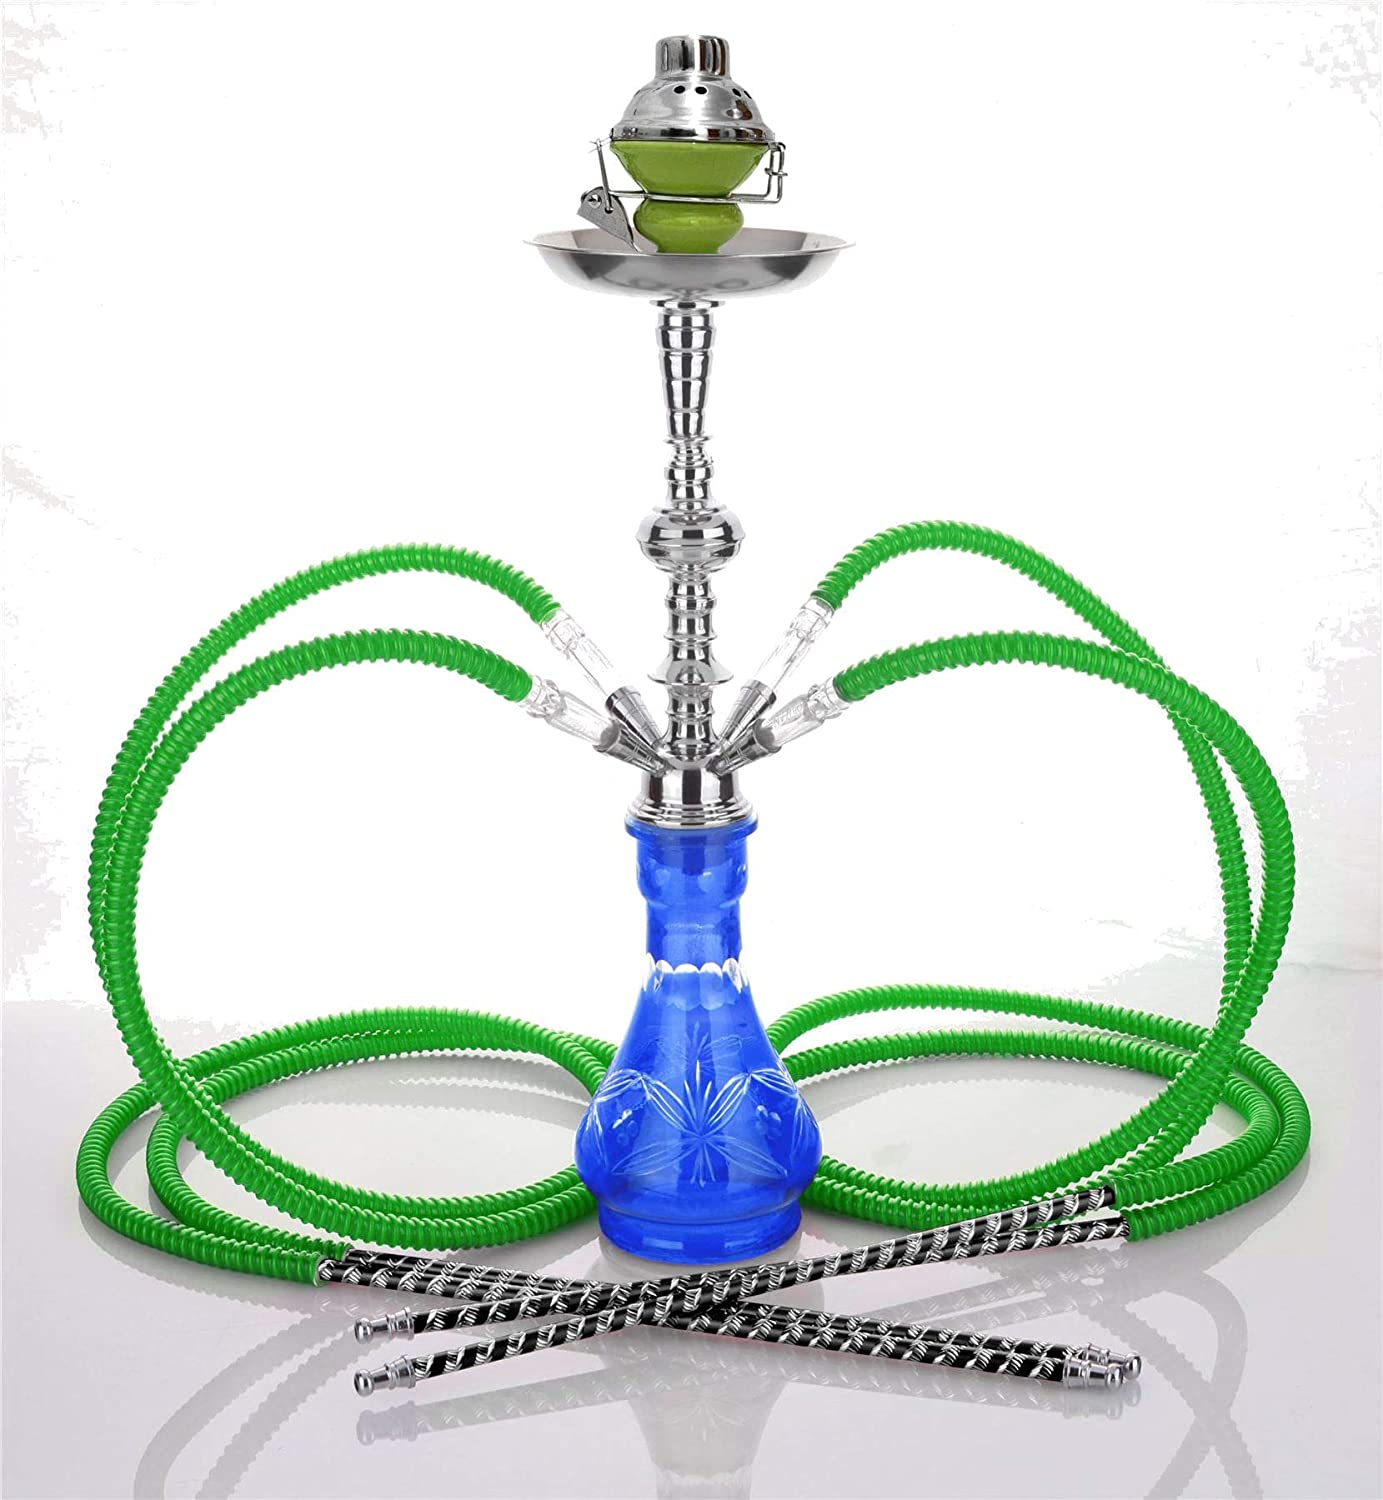 Medium Black 4 Hose Hookah no Tobacco no Nicotine + Wind Cover Shisha Pipe Set narghile narguile Chicha